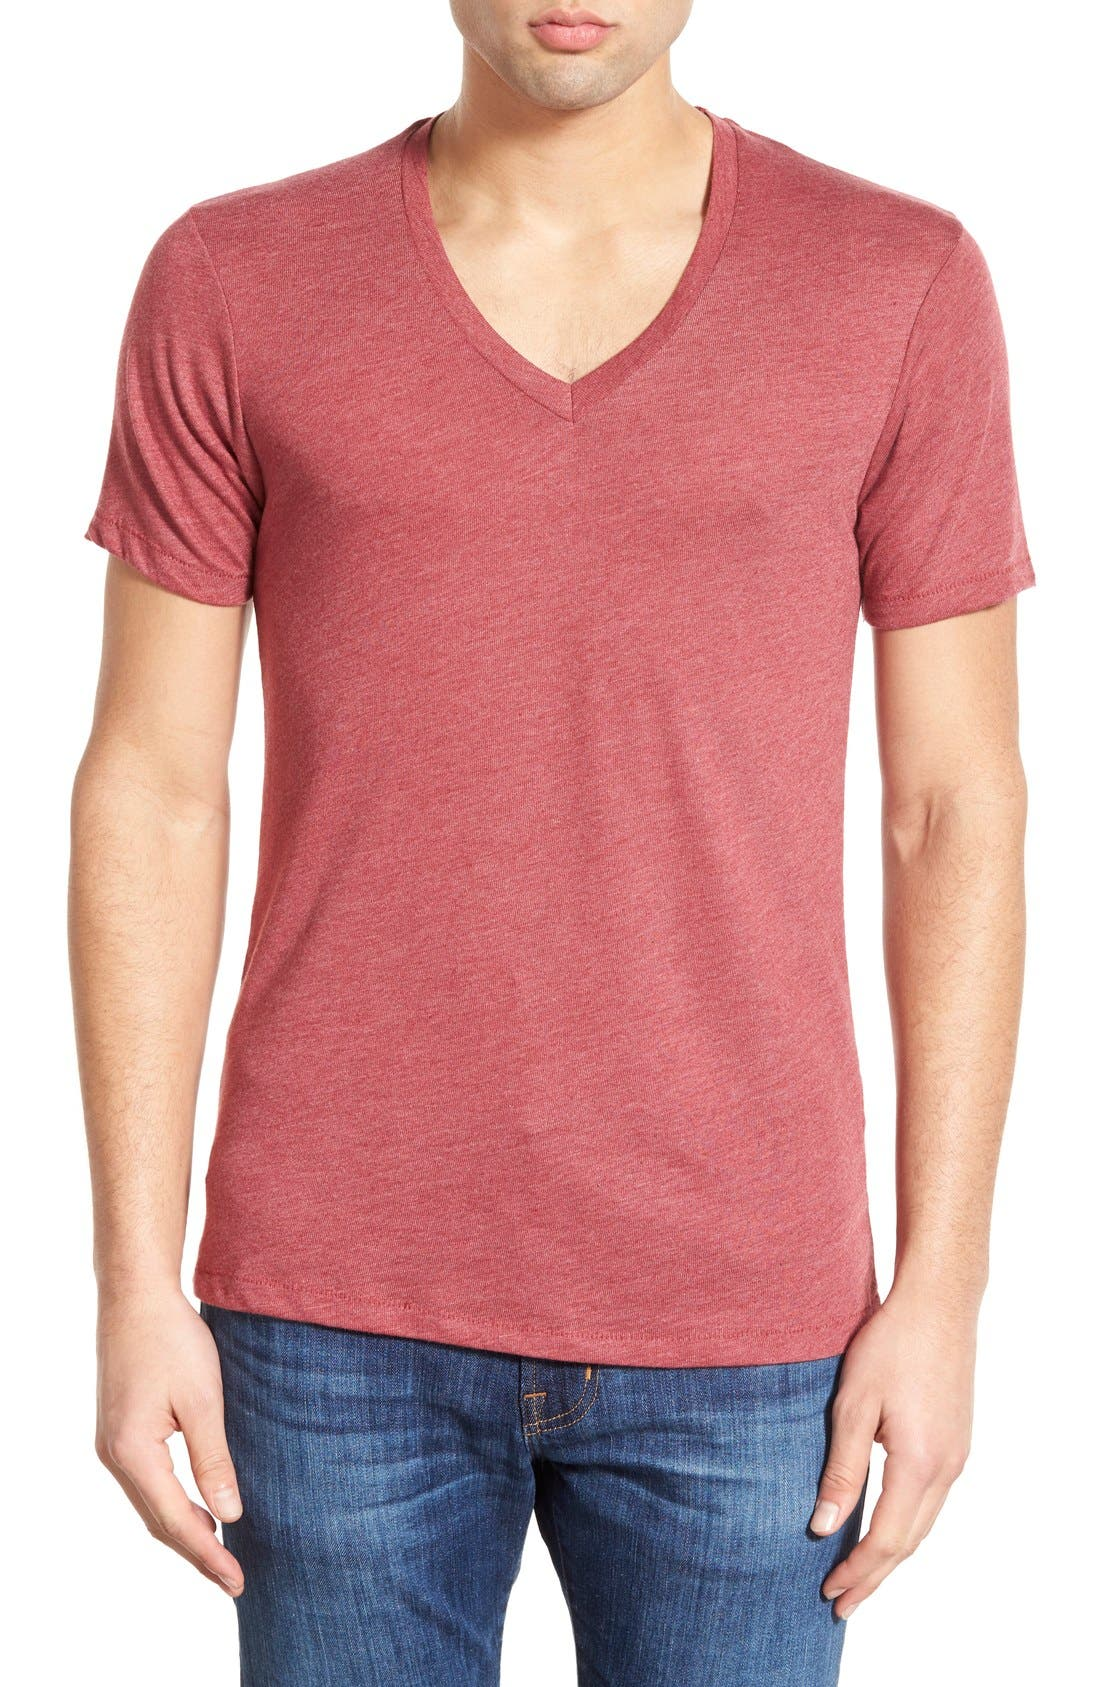 Main Image - Alternative Heathered Trim Fit V-Neck T-Shirt